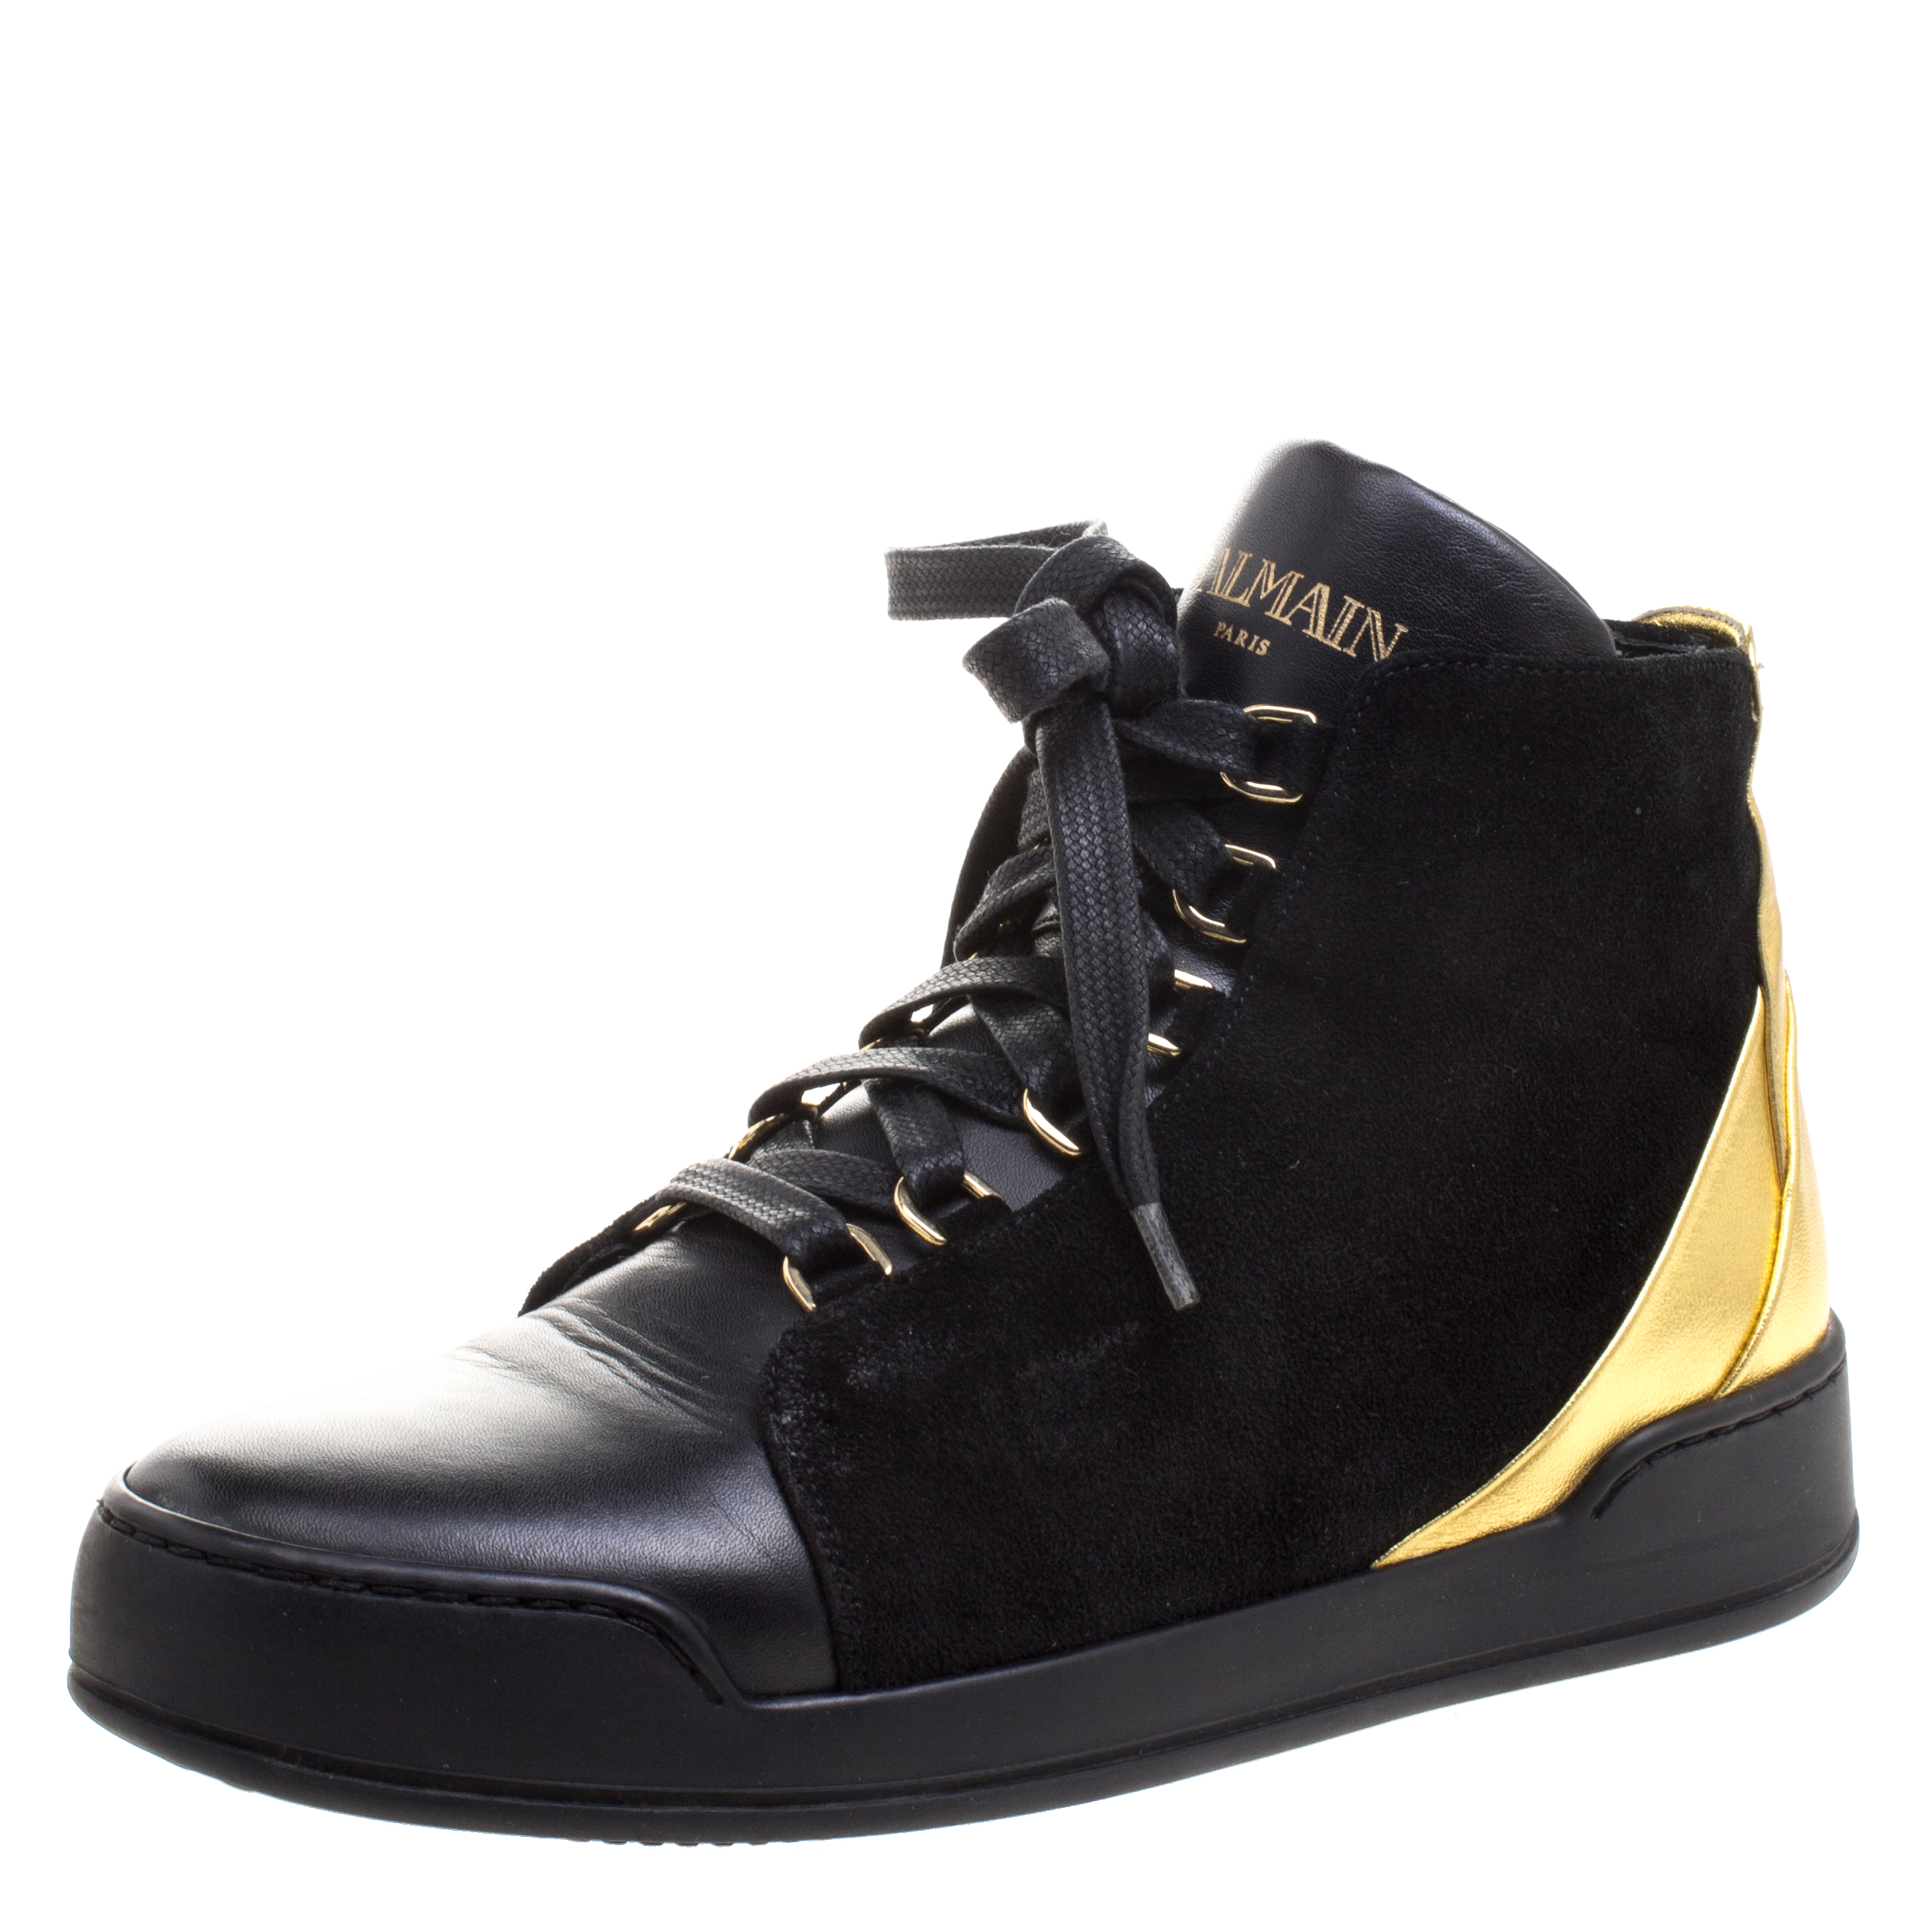 1d6fbf3c344 Buy Balmain Gold Metallic Leather And Black Suede High Top Sneakers ...